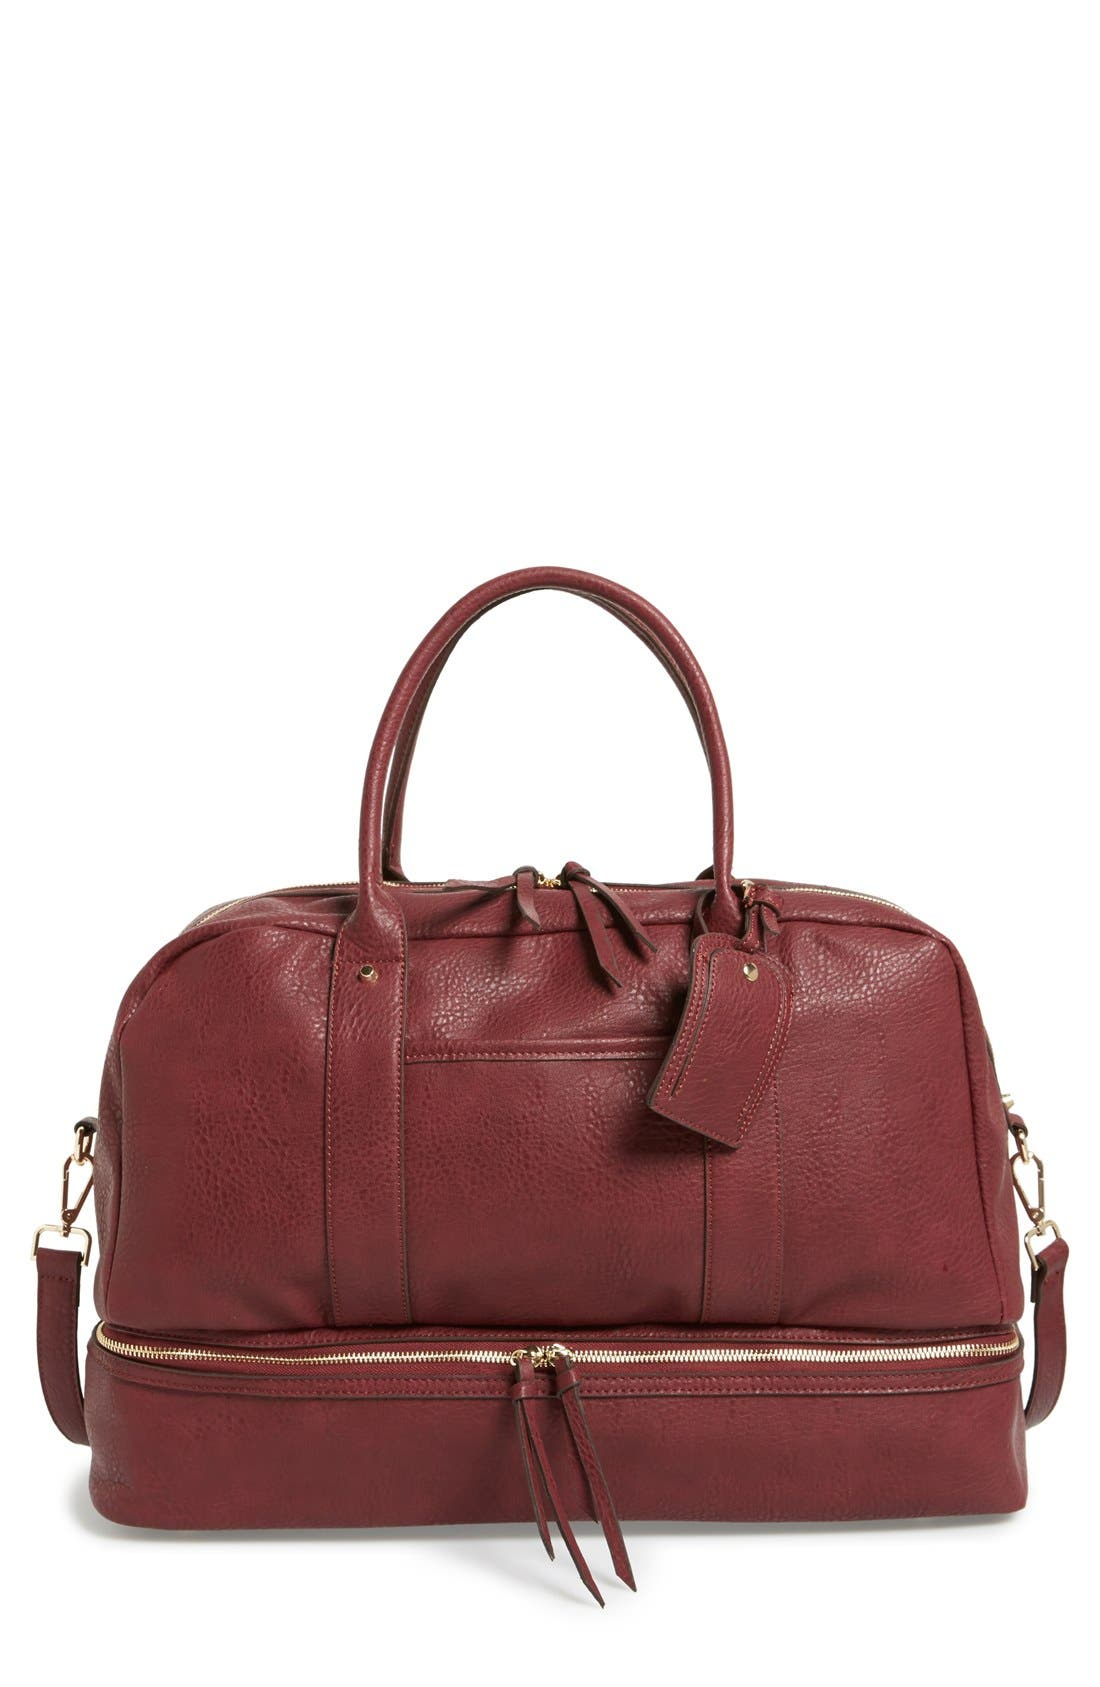 Main Image - Sole Society 'Mason' Faux Leather Weekend Bag